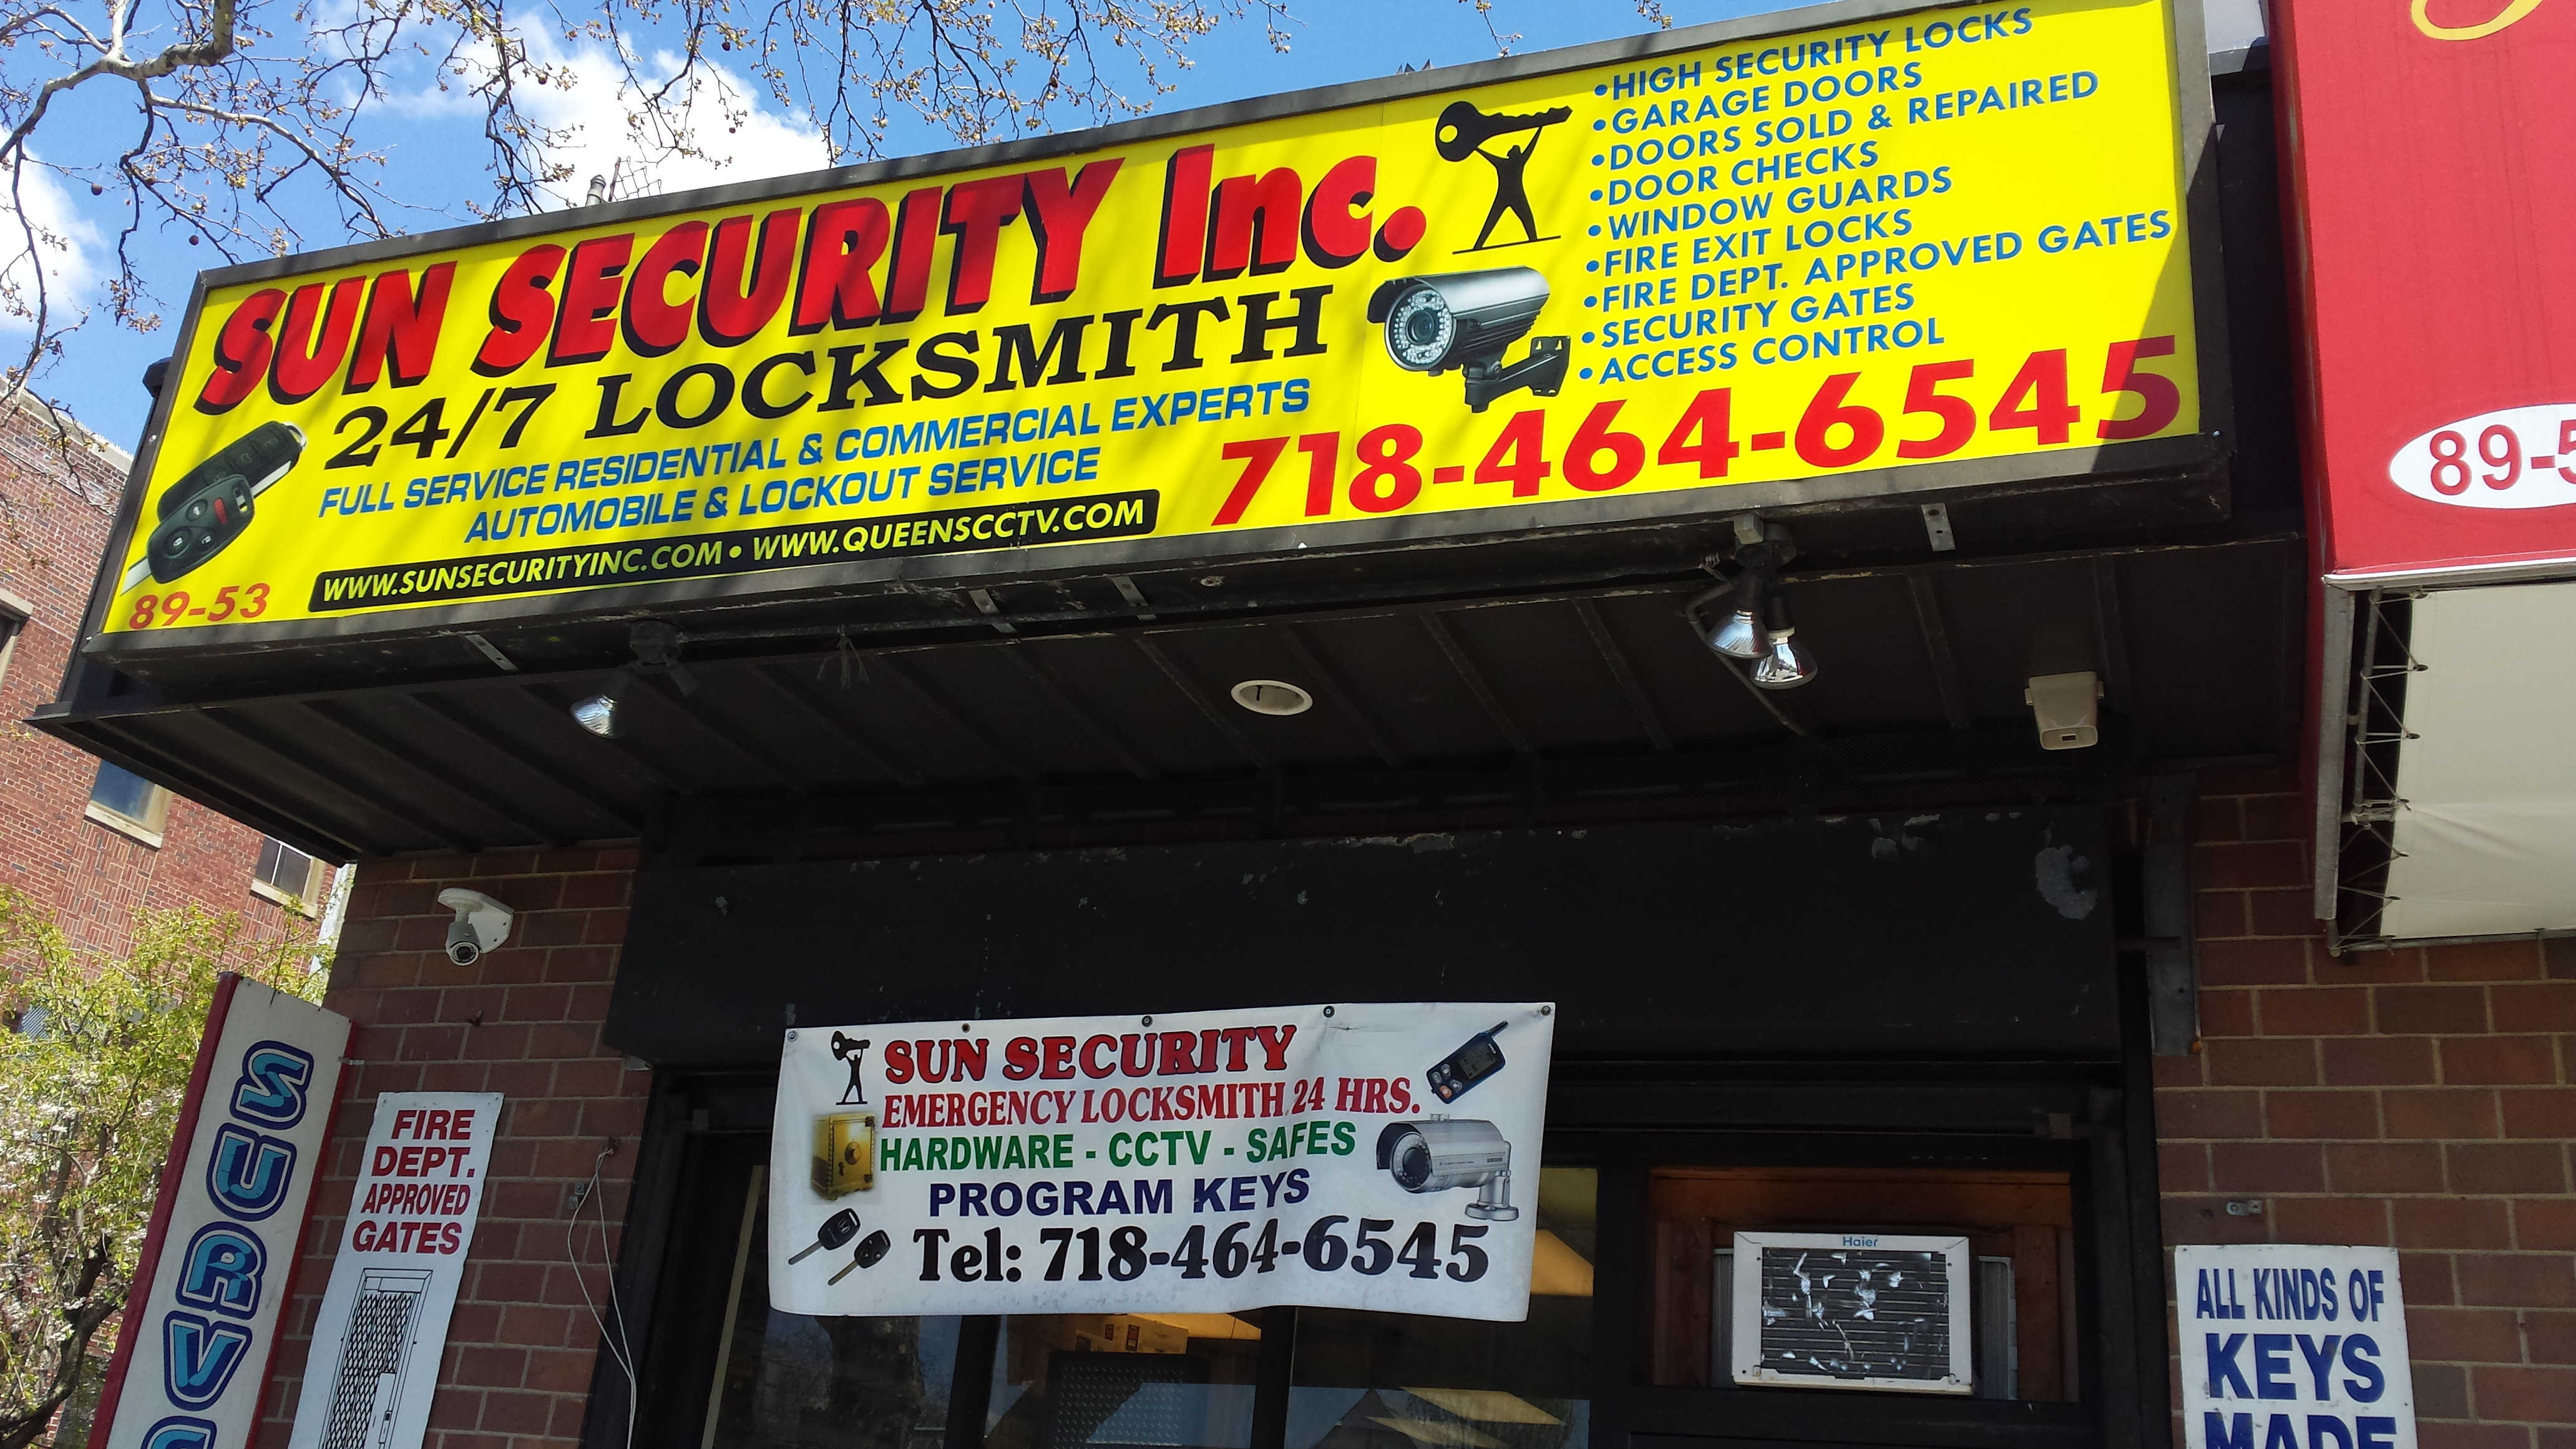 Sun Security Inc And Locksmith In Queens Village, Ny. Humana Insurance Medicare Say Hello In German. Forensic Accounting Courses Ofc Cable Price. Printing Companies In Tampa Title Loans Sc. Desk Appearance Ticket Nyc Emr Adoption Model. St Louis Replacement Windows. Attic Insulation Contractor Dr Mills Dentist. Termite Control Memphis Seo Writing Companies. Canyon Lake Pest Control Contact Google Sites